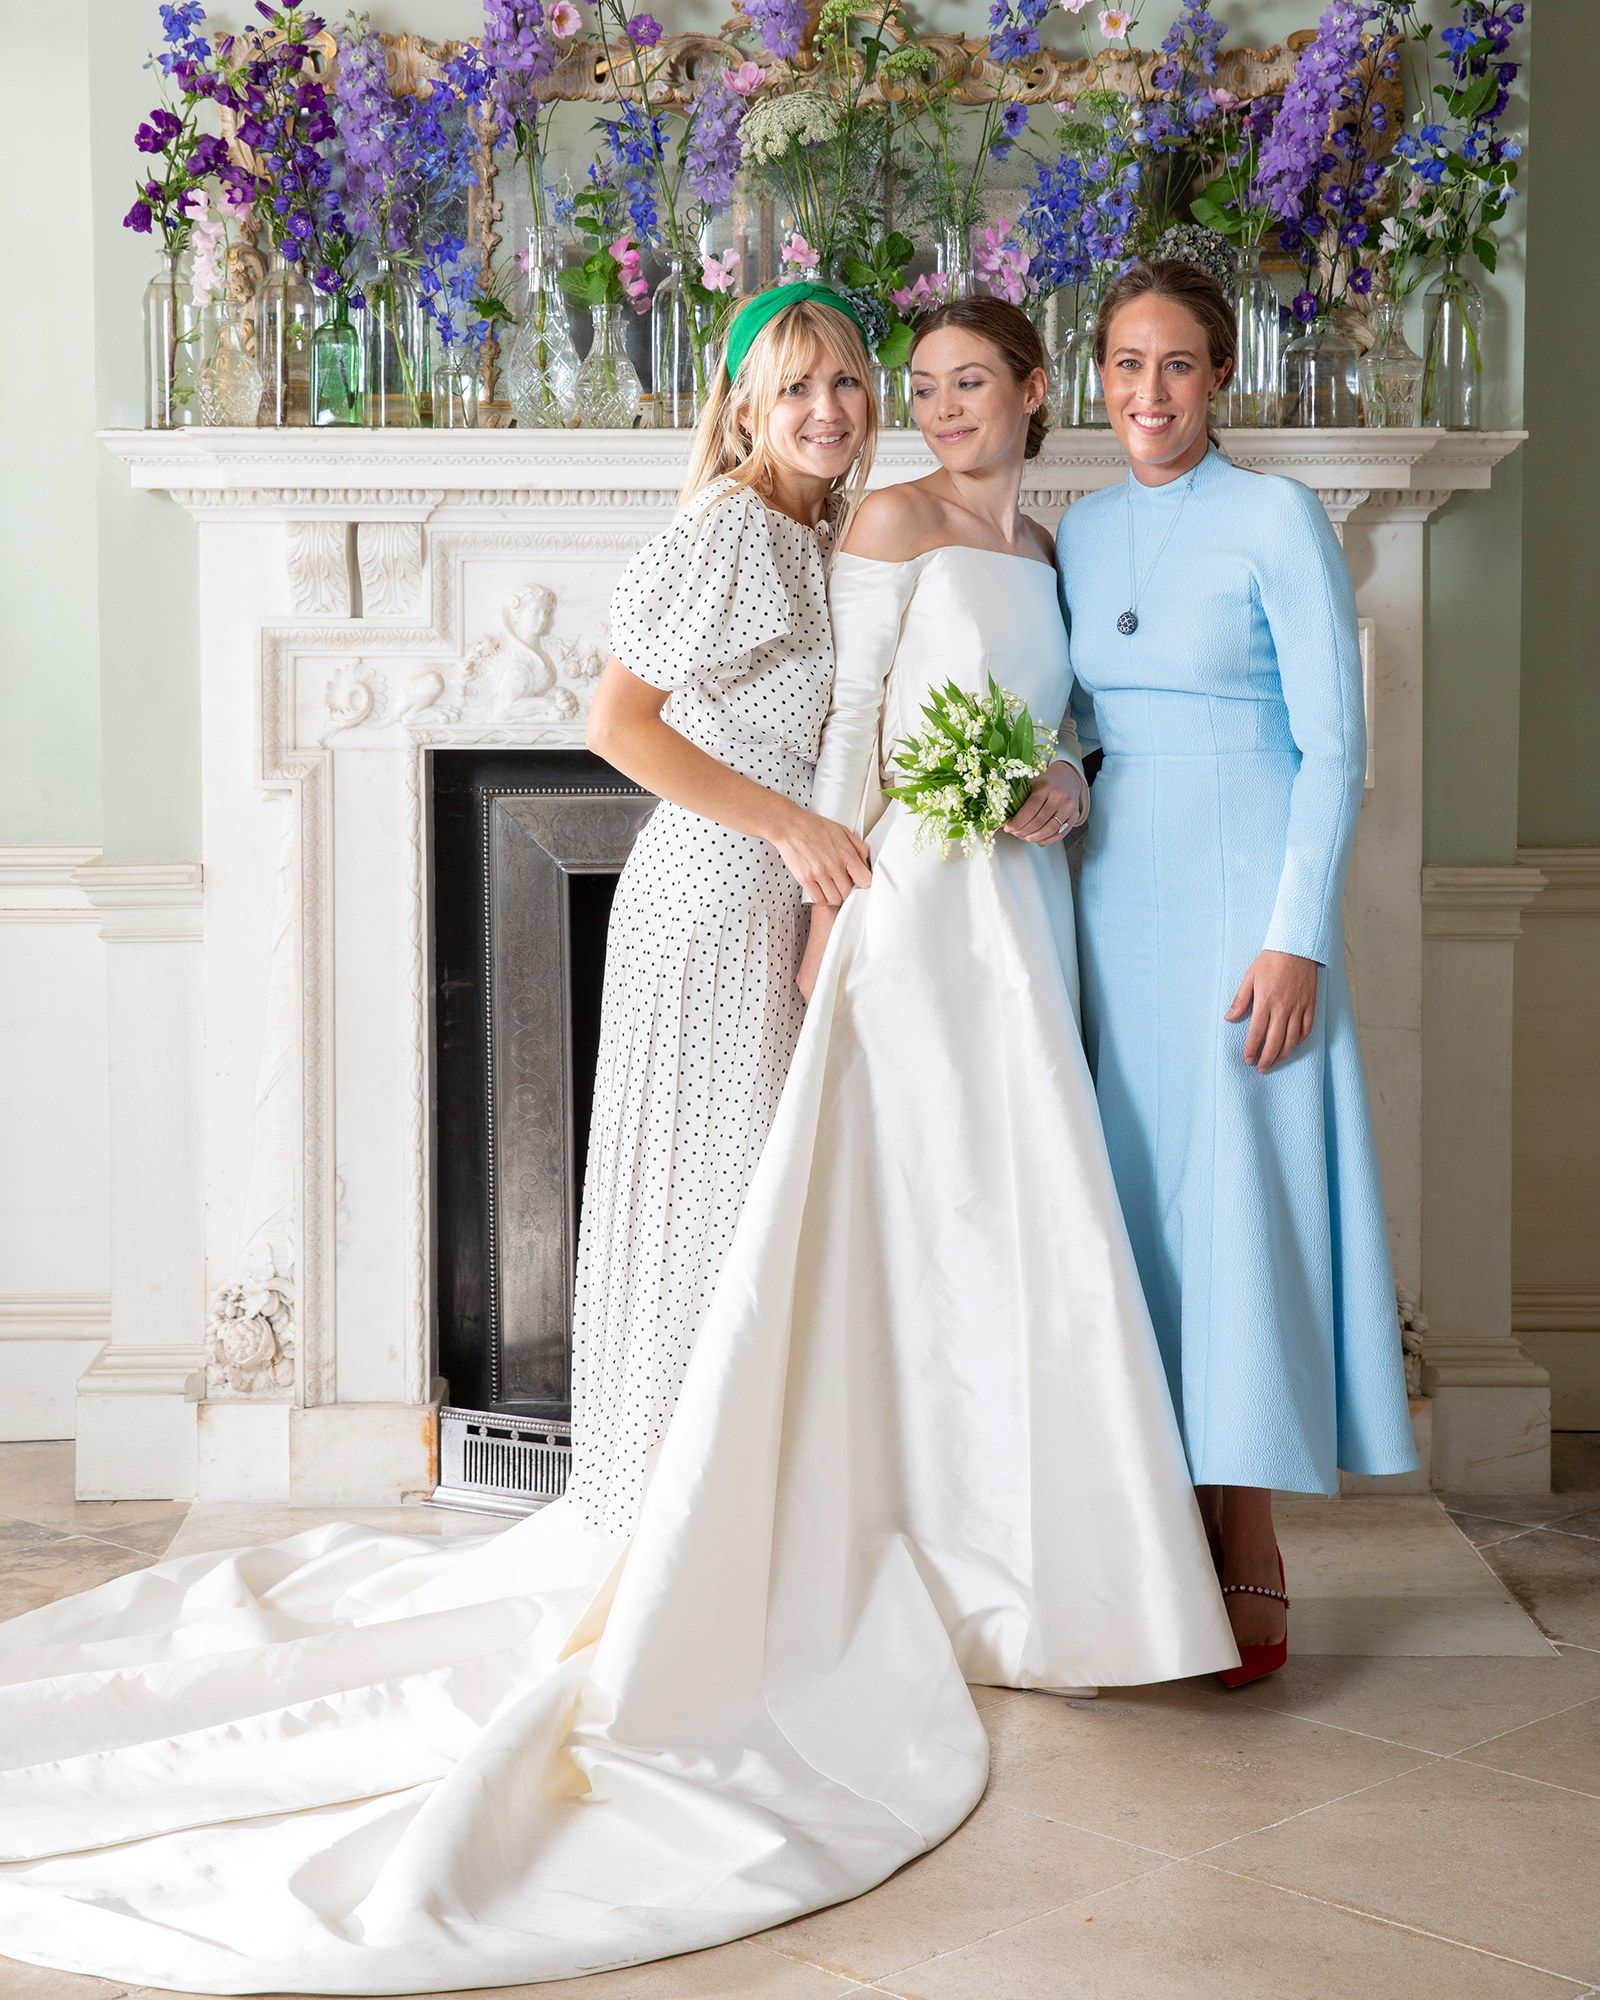 The Bride Wore Emilia Wickstead To Her English Wedding At An 18th